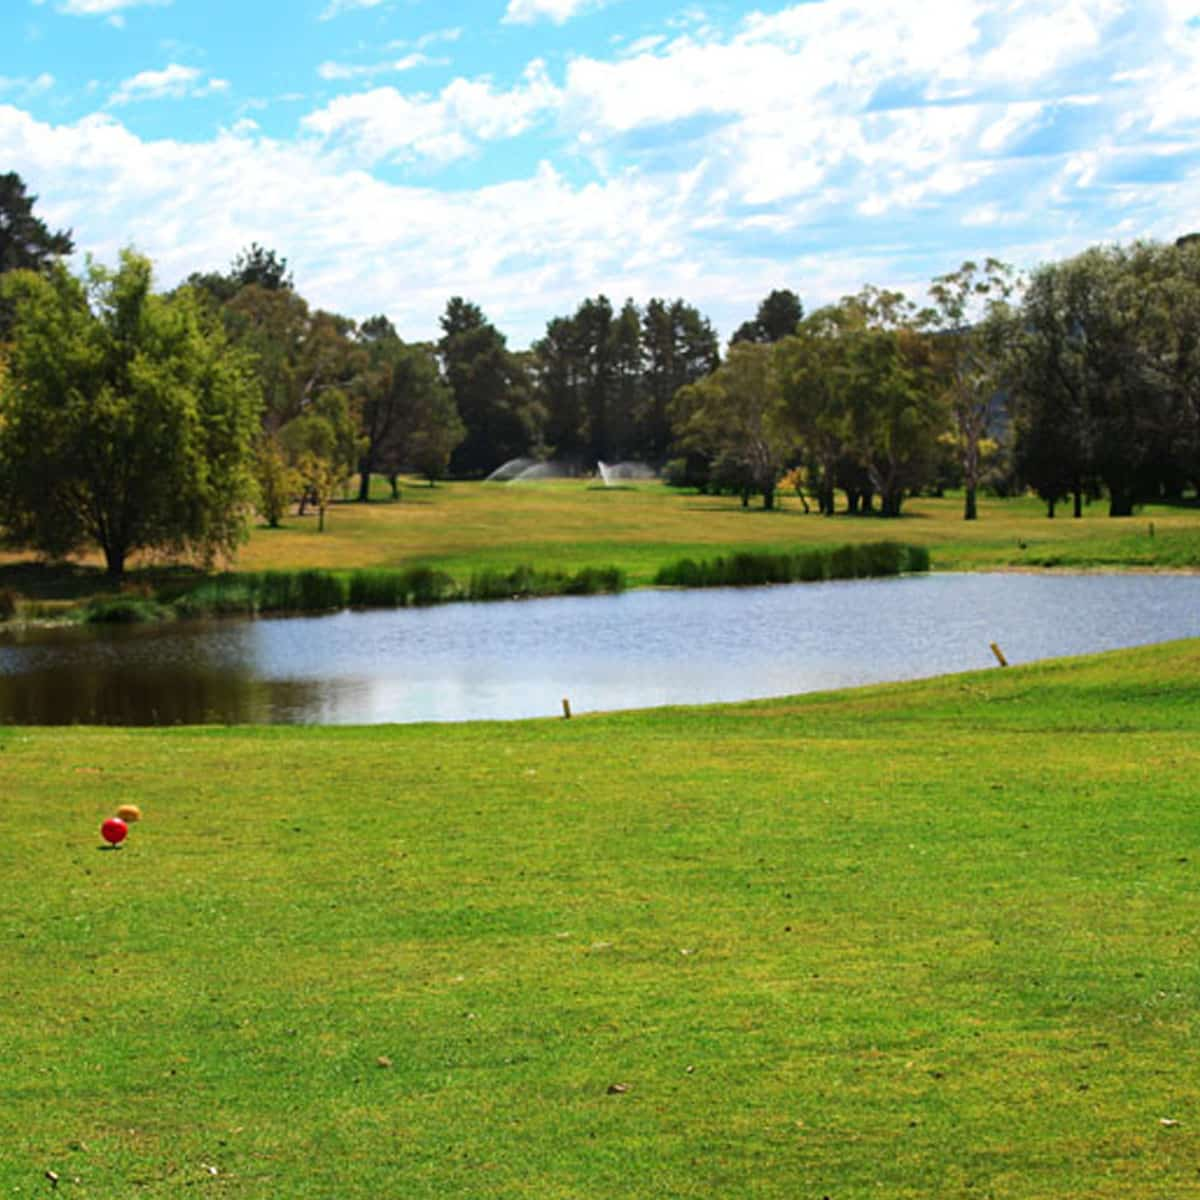 Scenery of the golf course at Lithgow Golf Club